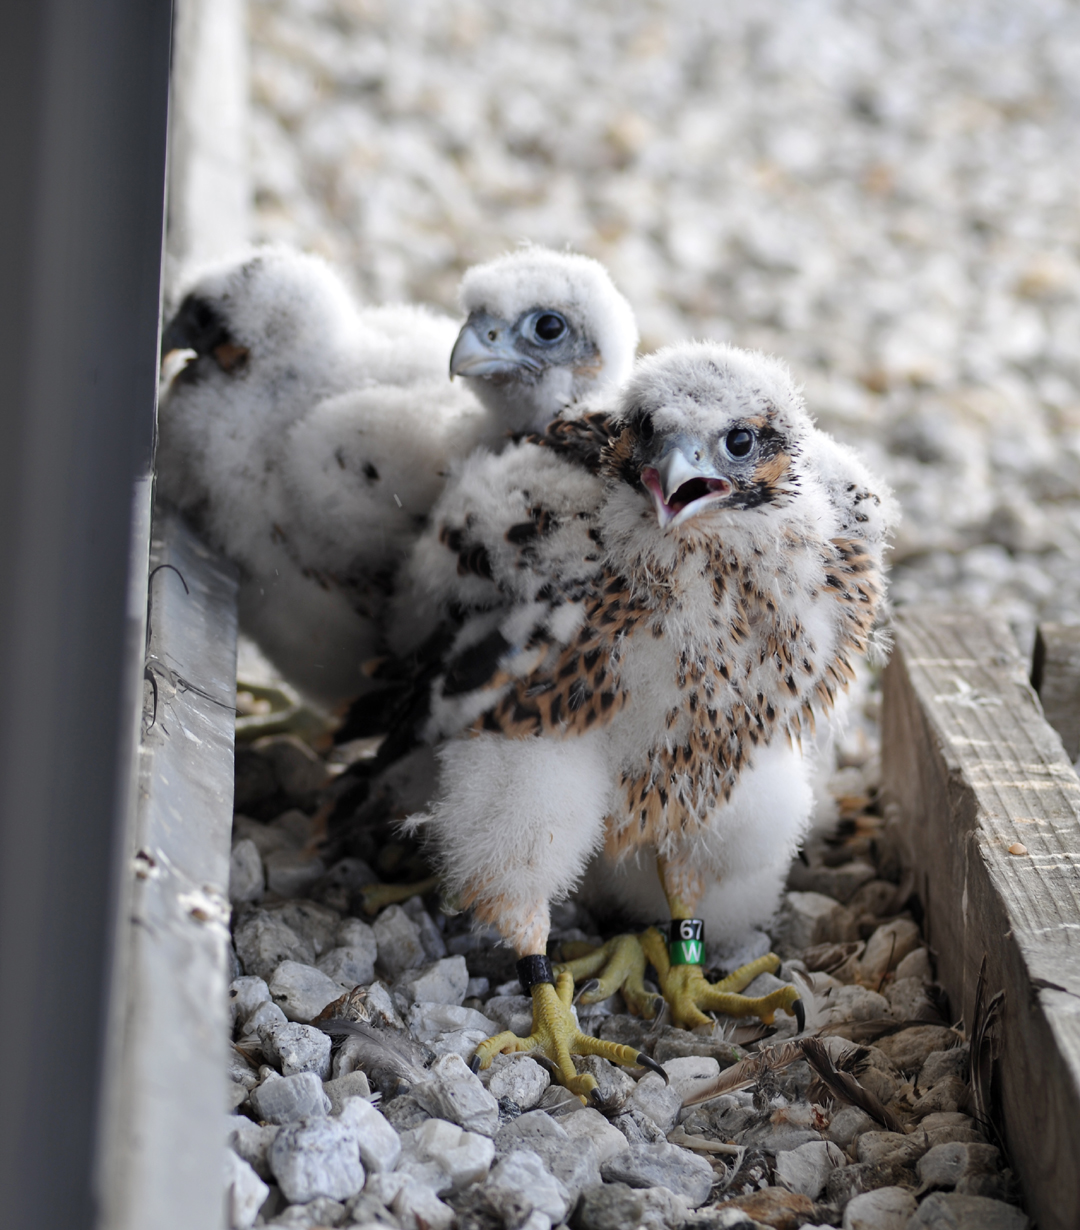 Peregrine nestlings (around 3 weeks old) are banded with federal and